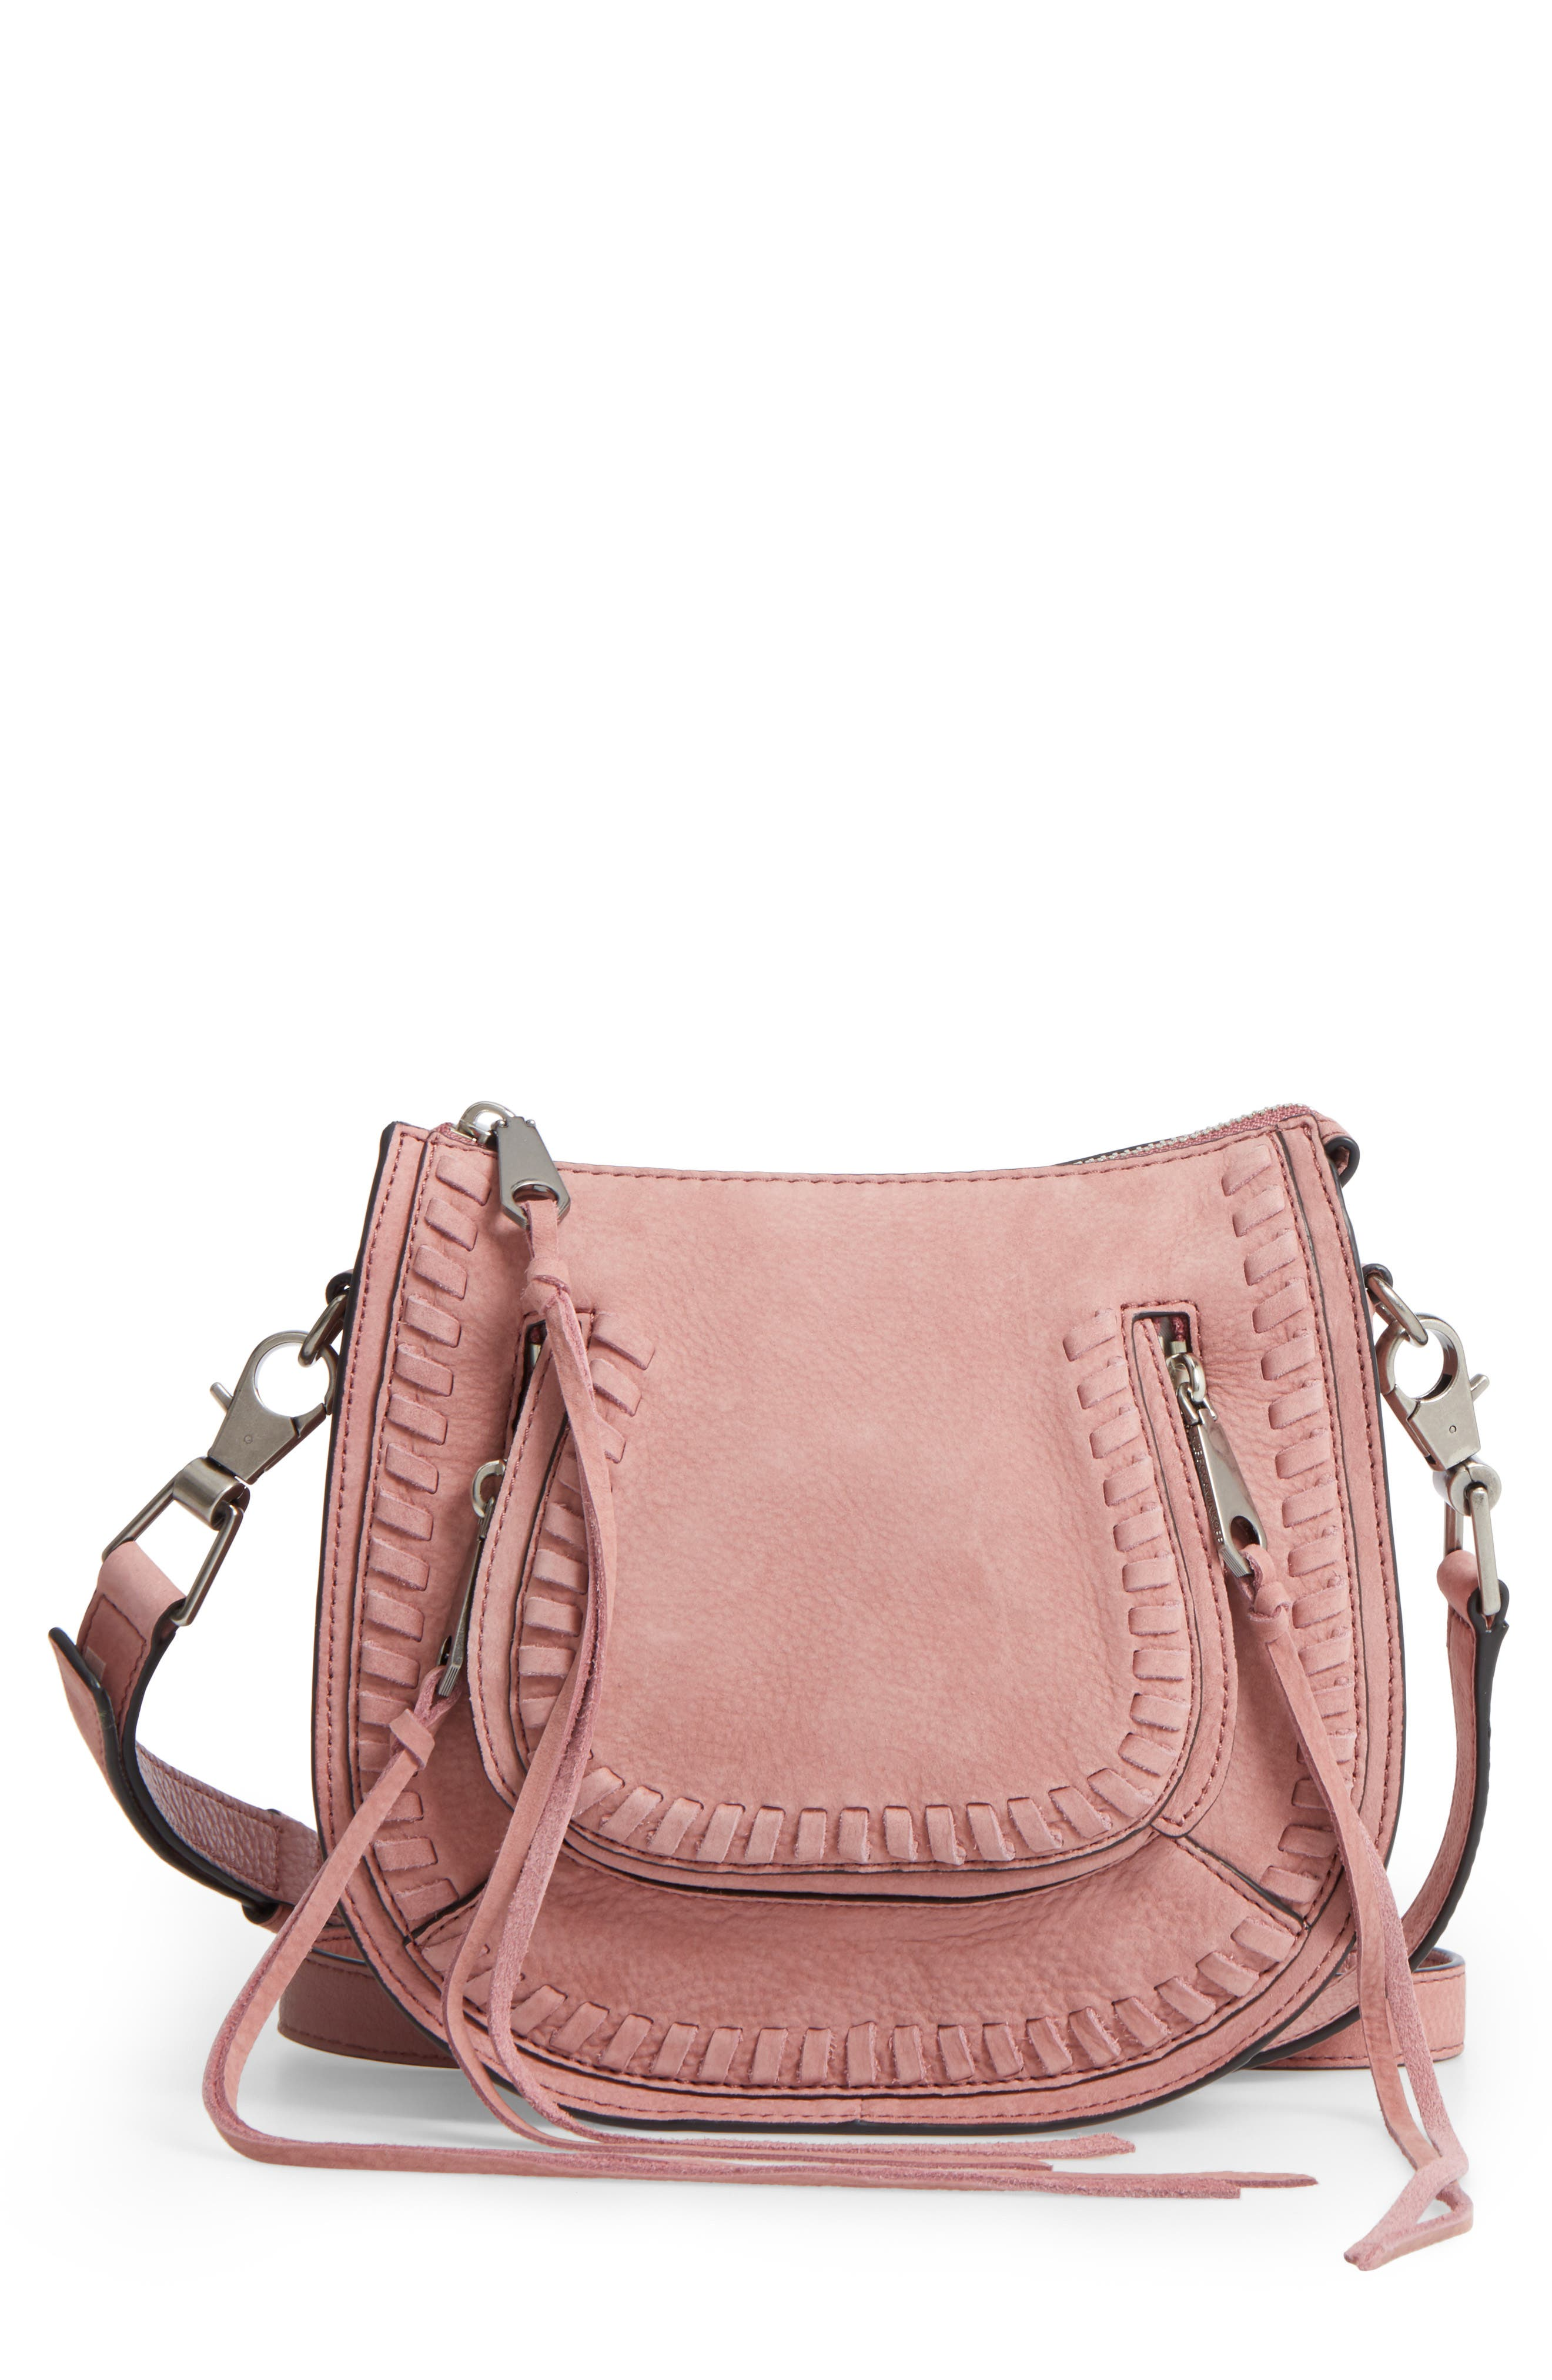 REBECCA MINKOFF Mini Vanity Leather Saddle Bag